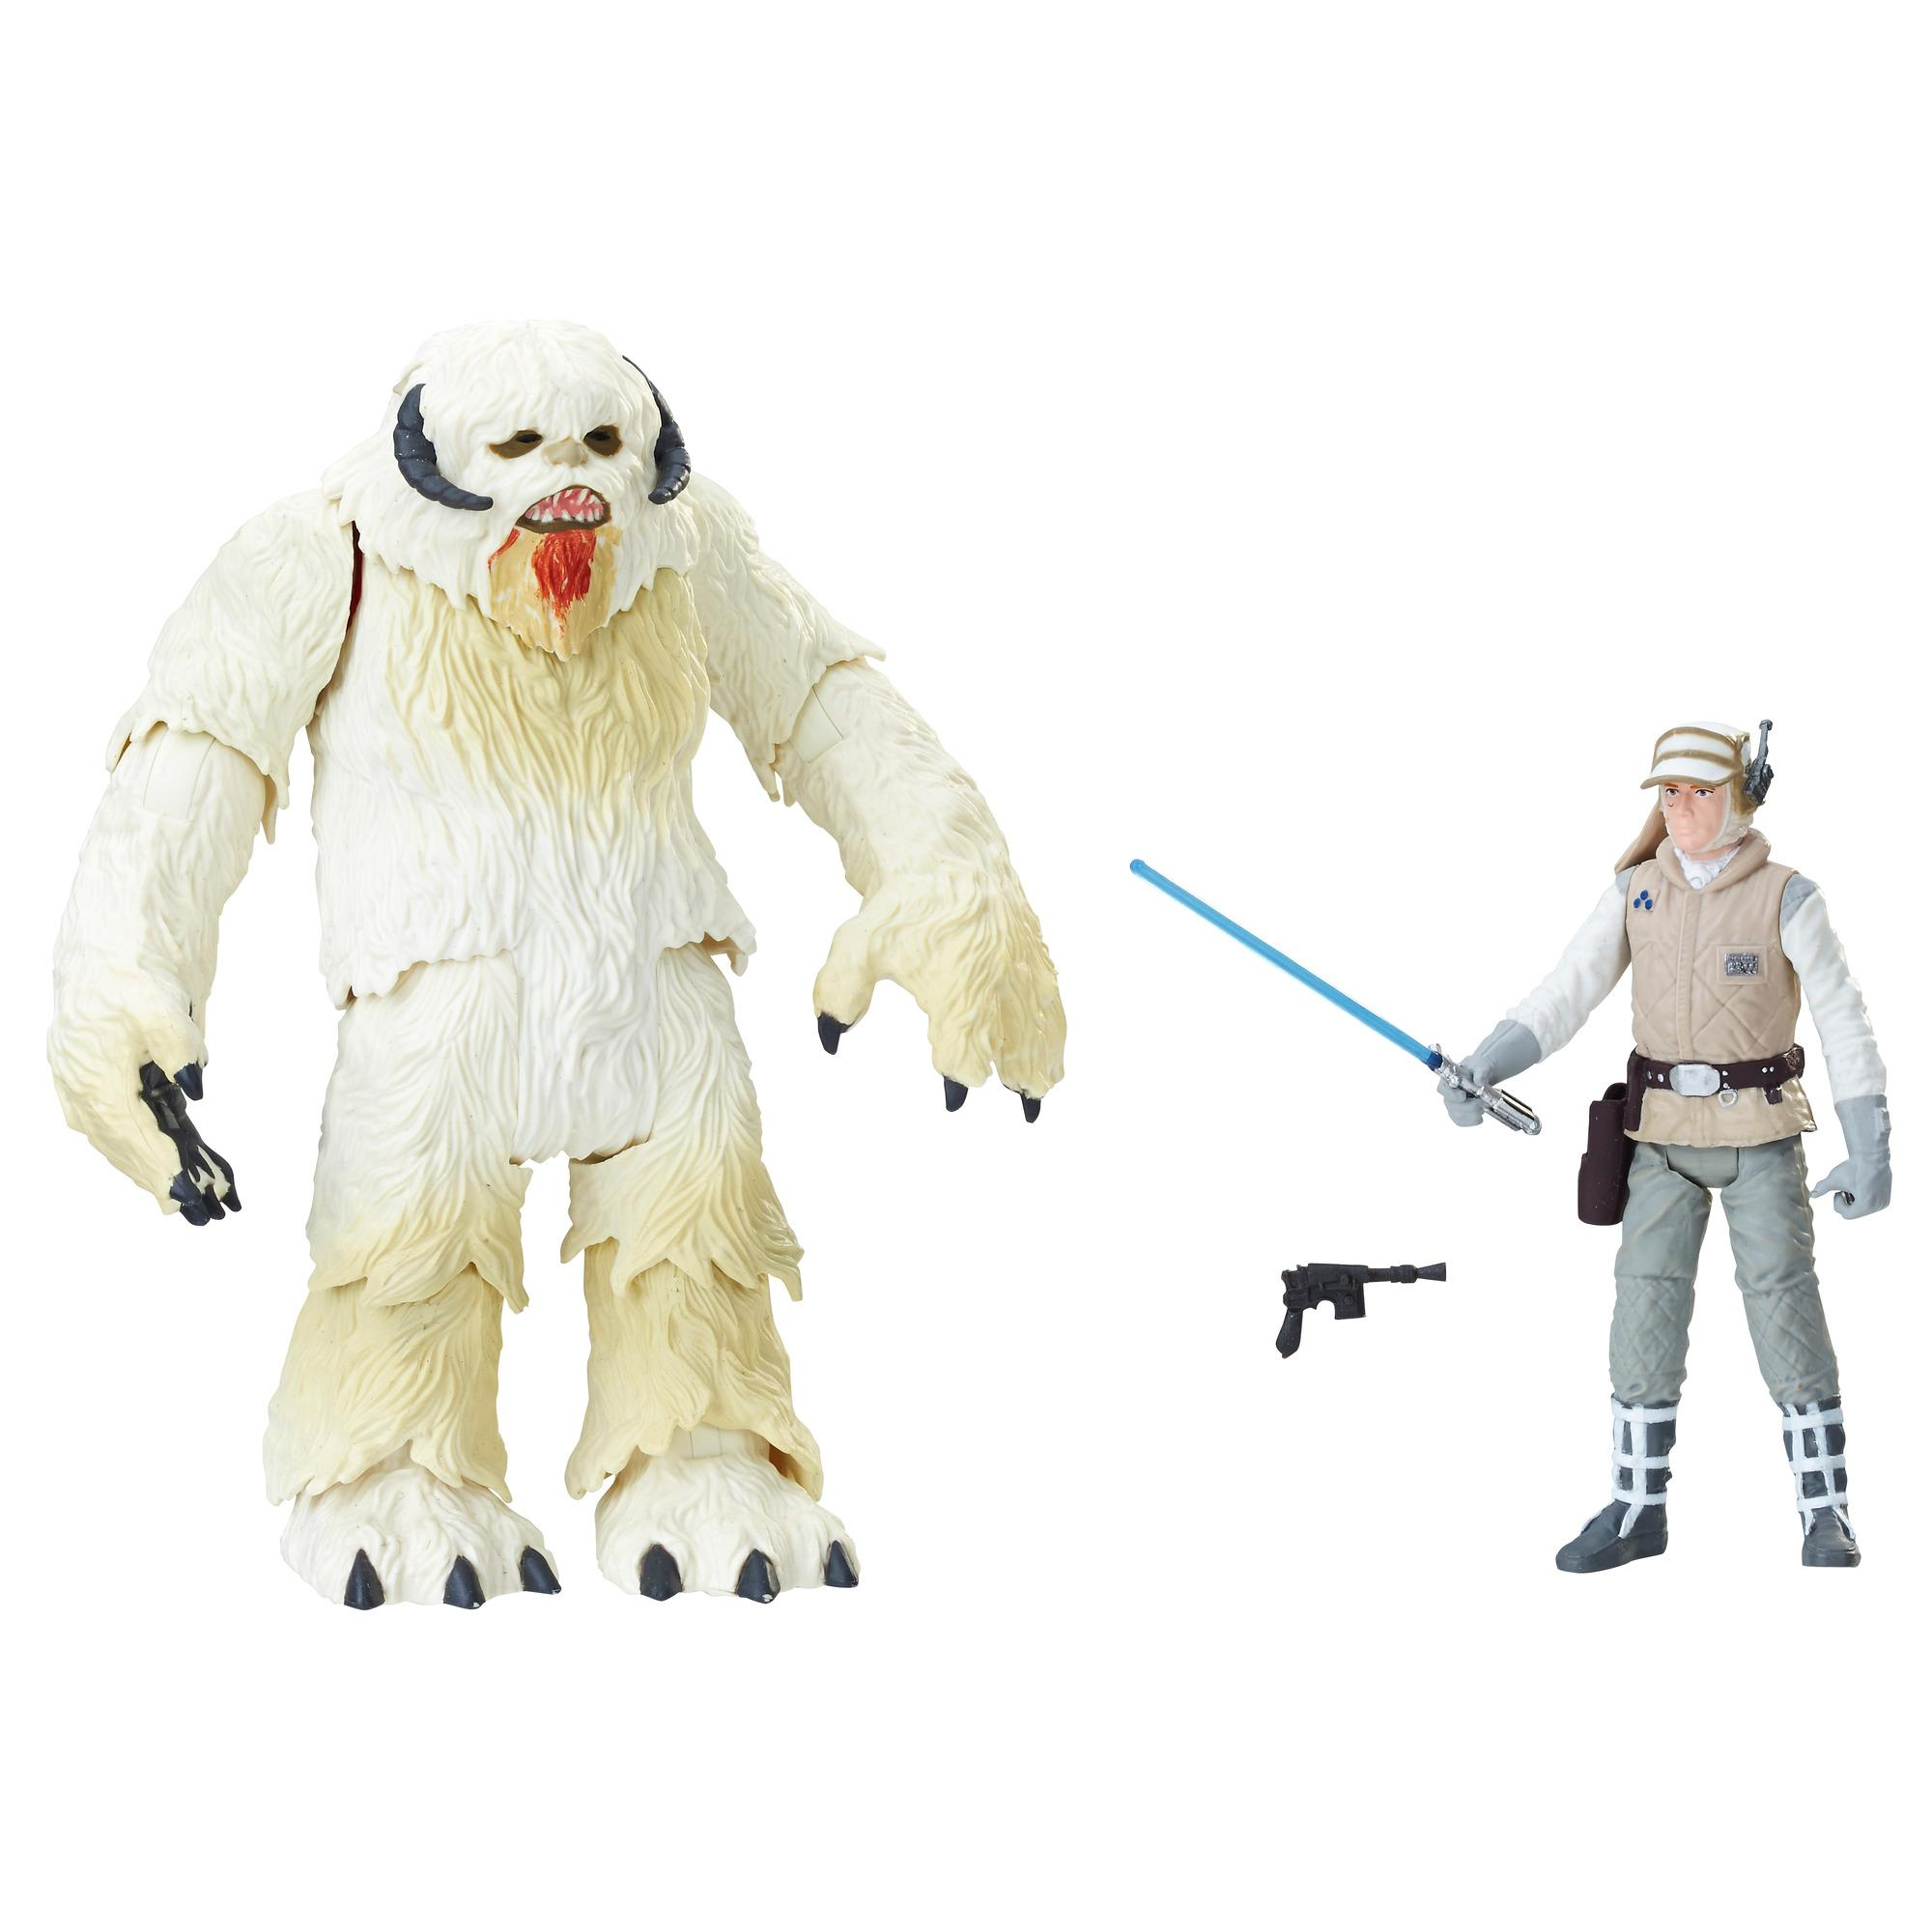 Star Wars Wampa action figure